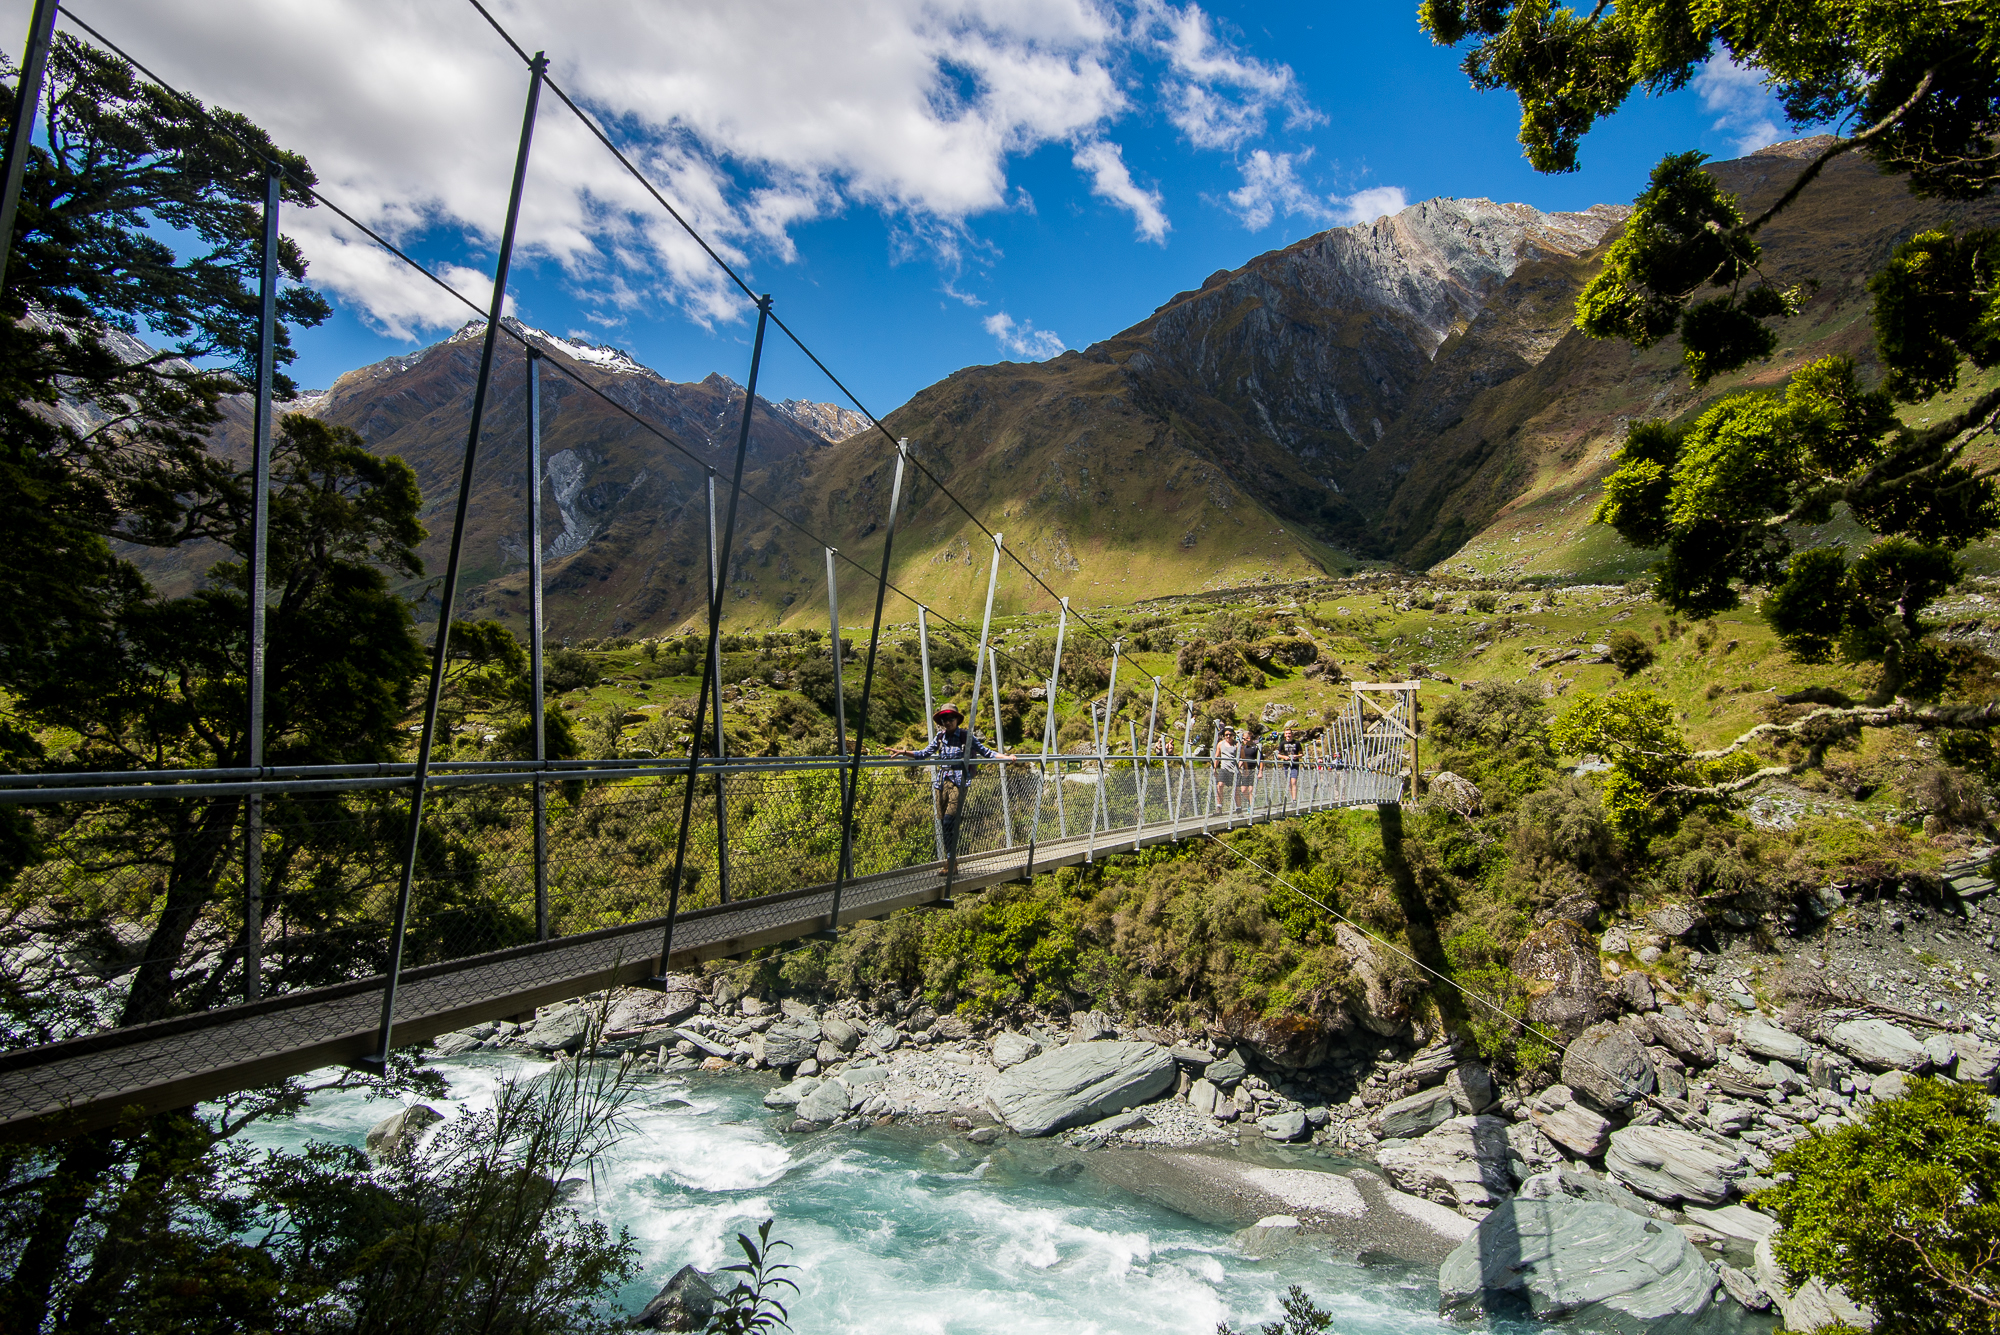 Rob-Roy-MANP-Swing-Bridge-Wanaka-JL(1)